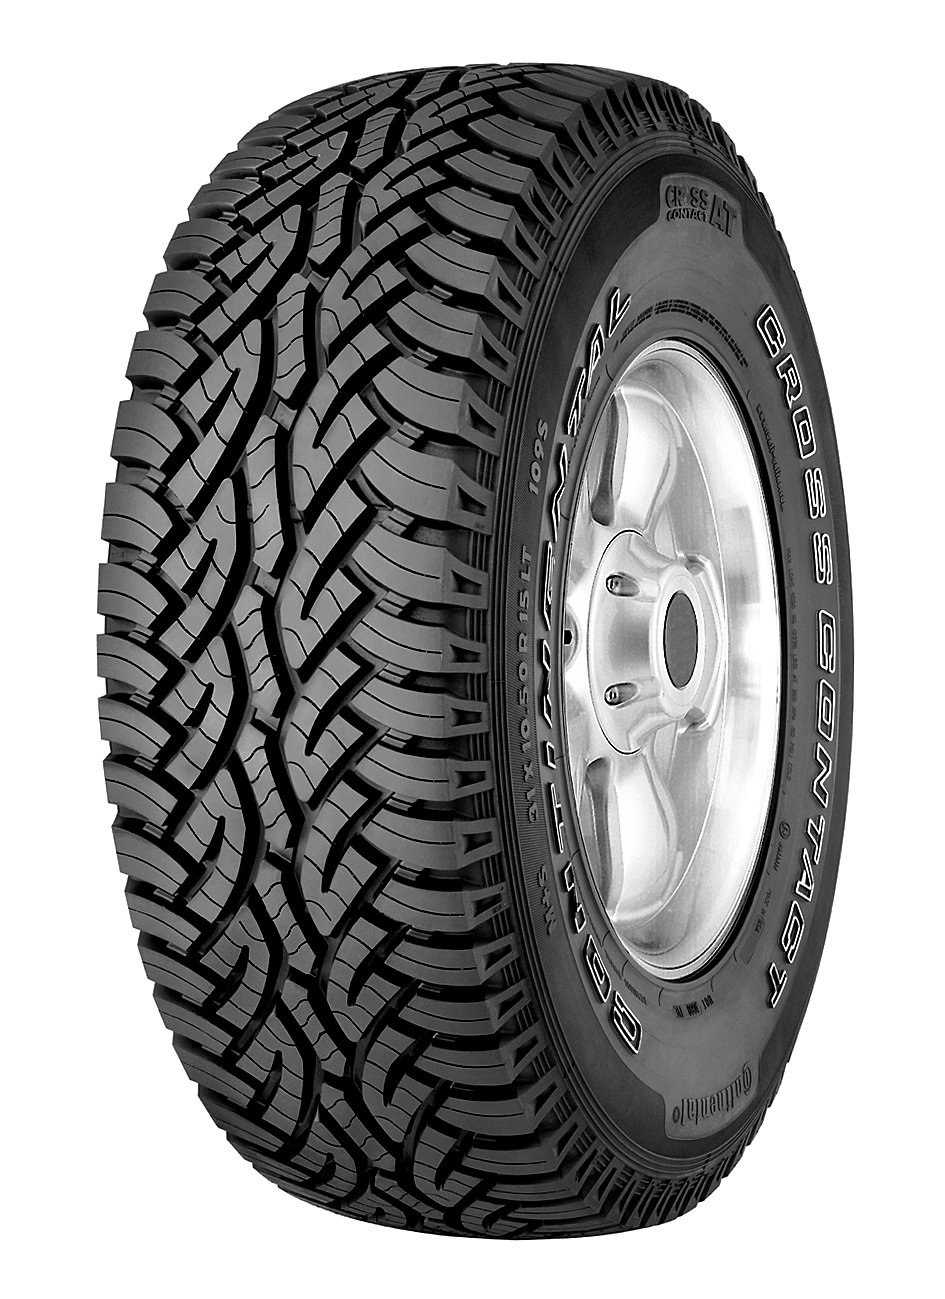 Pneu CONTINENTAL CROSSCONTACT AT 205/70R15 96 T